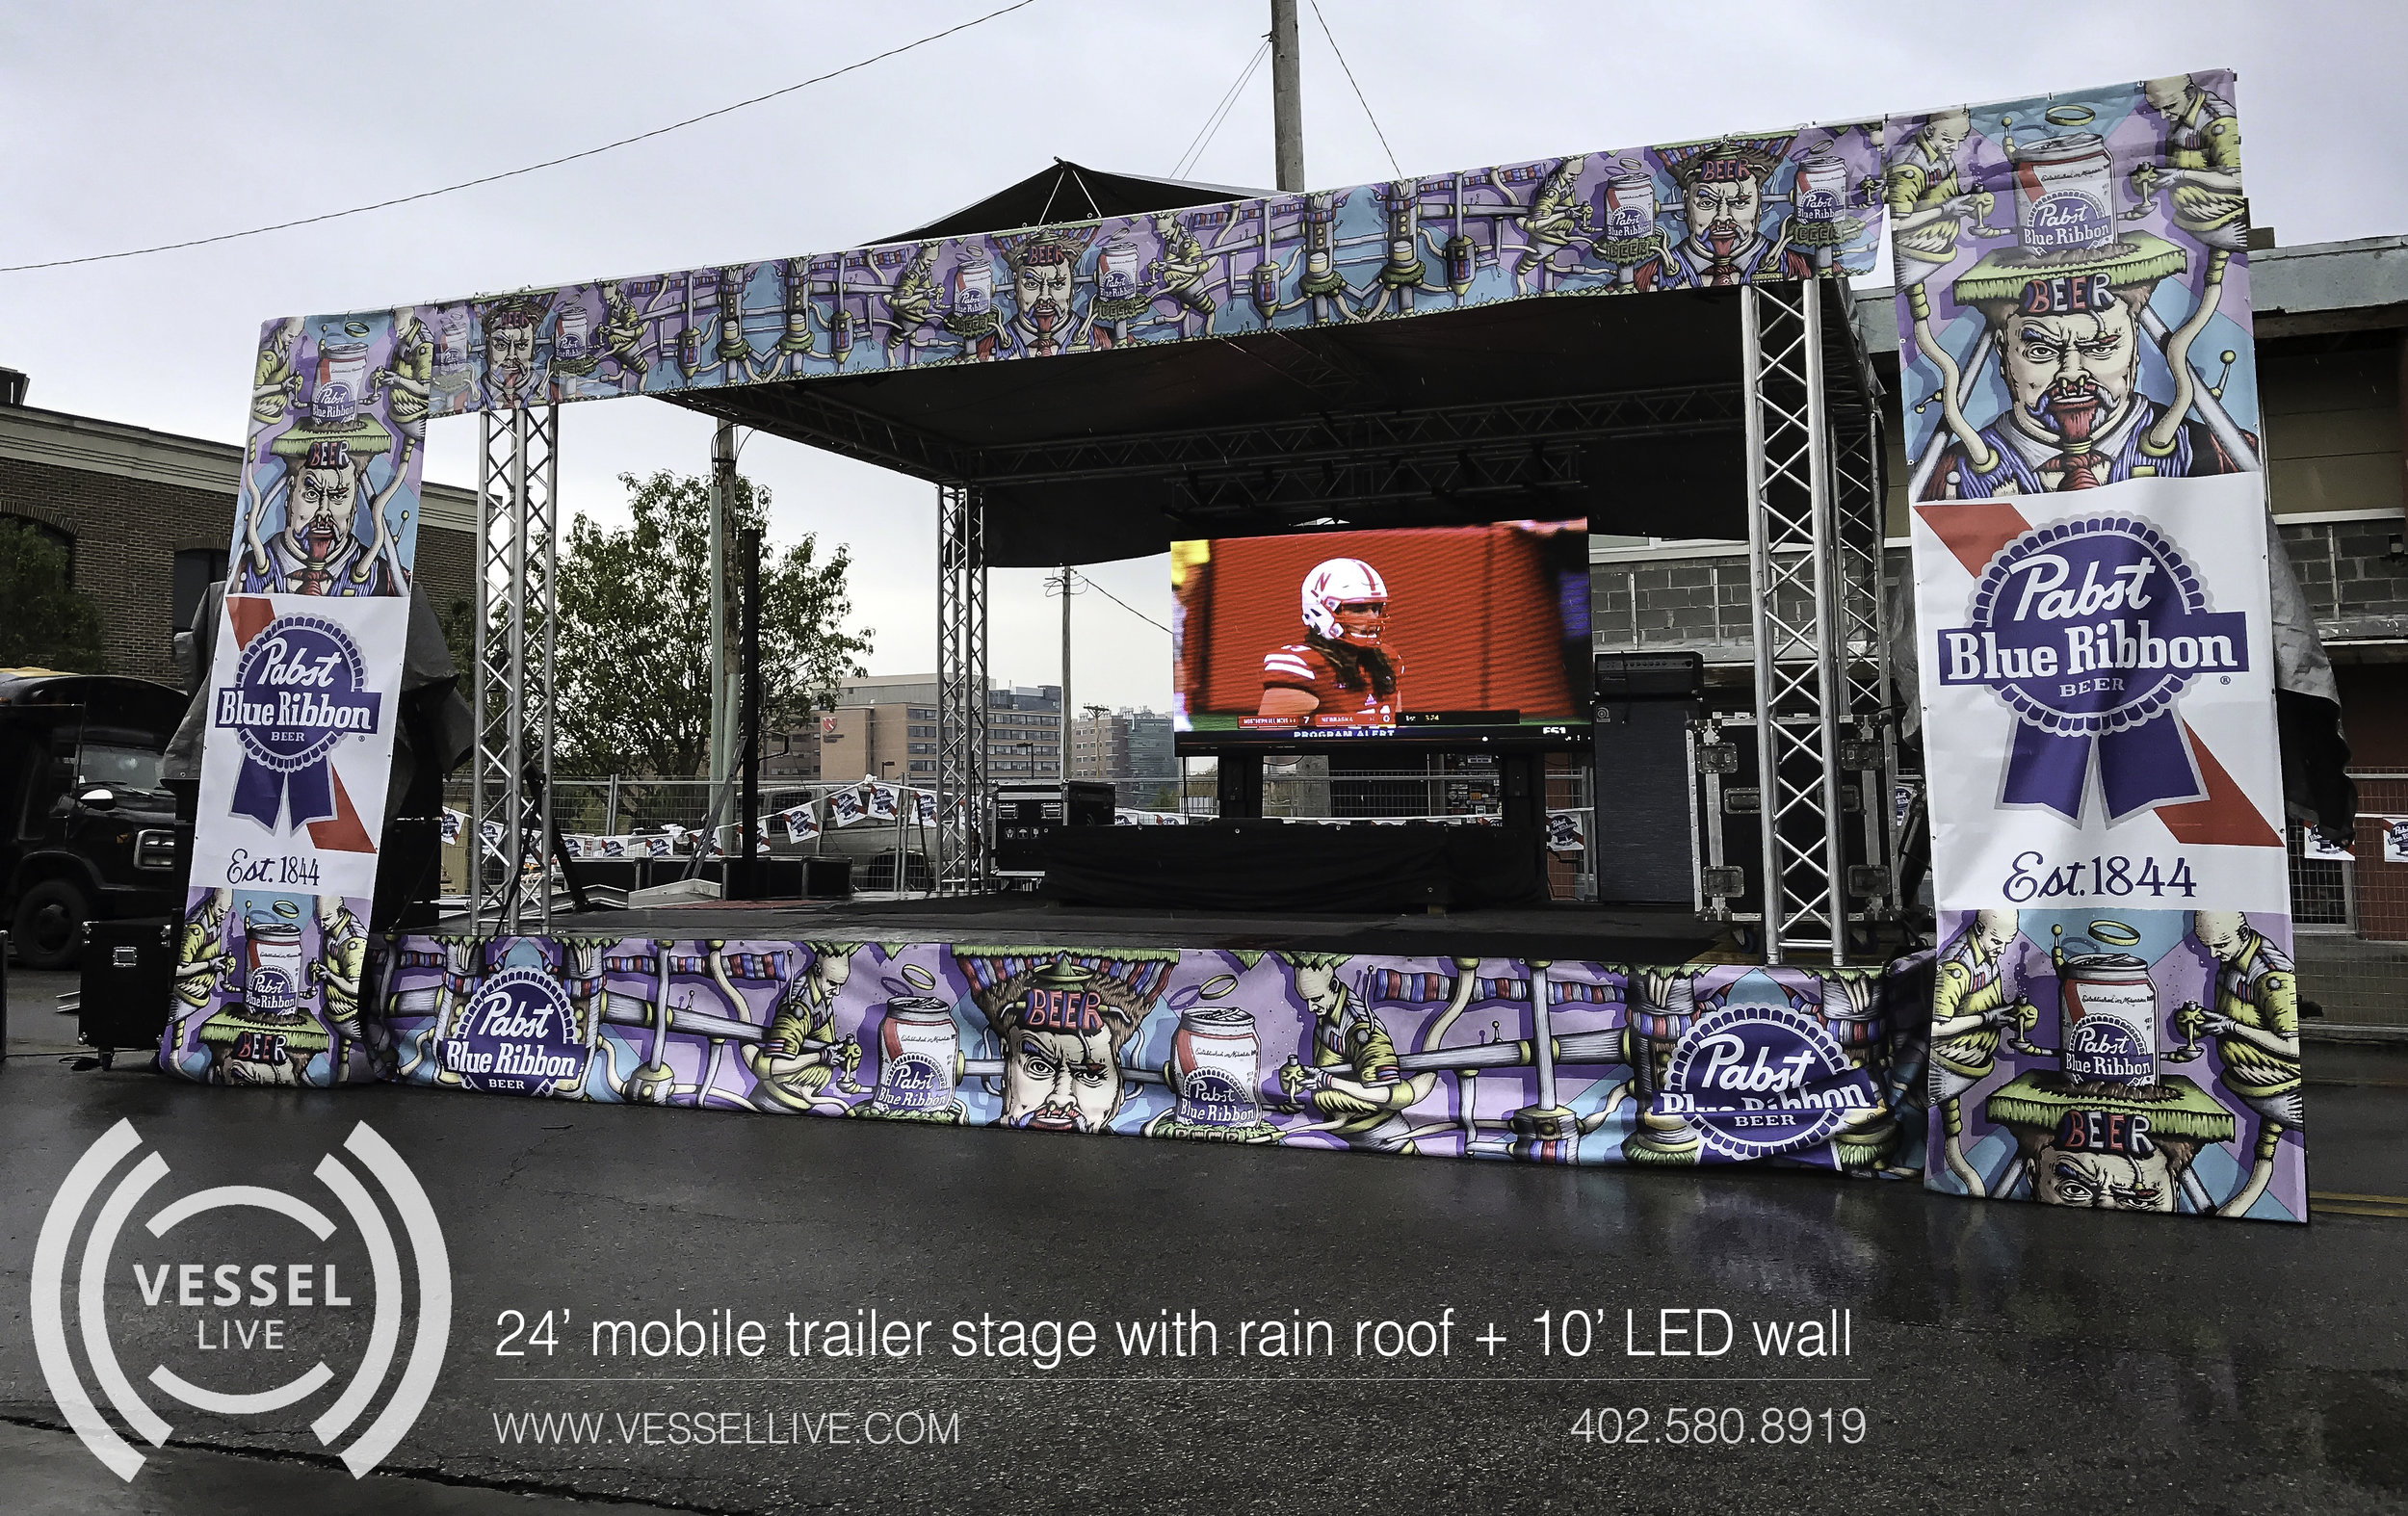 24' stage with LED wall